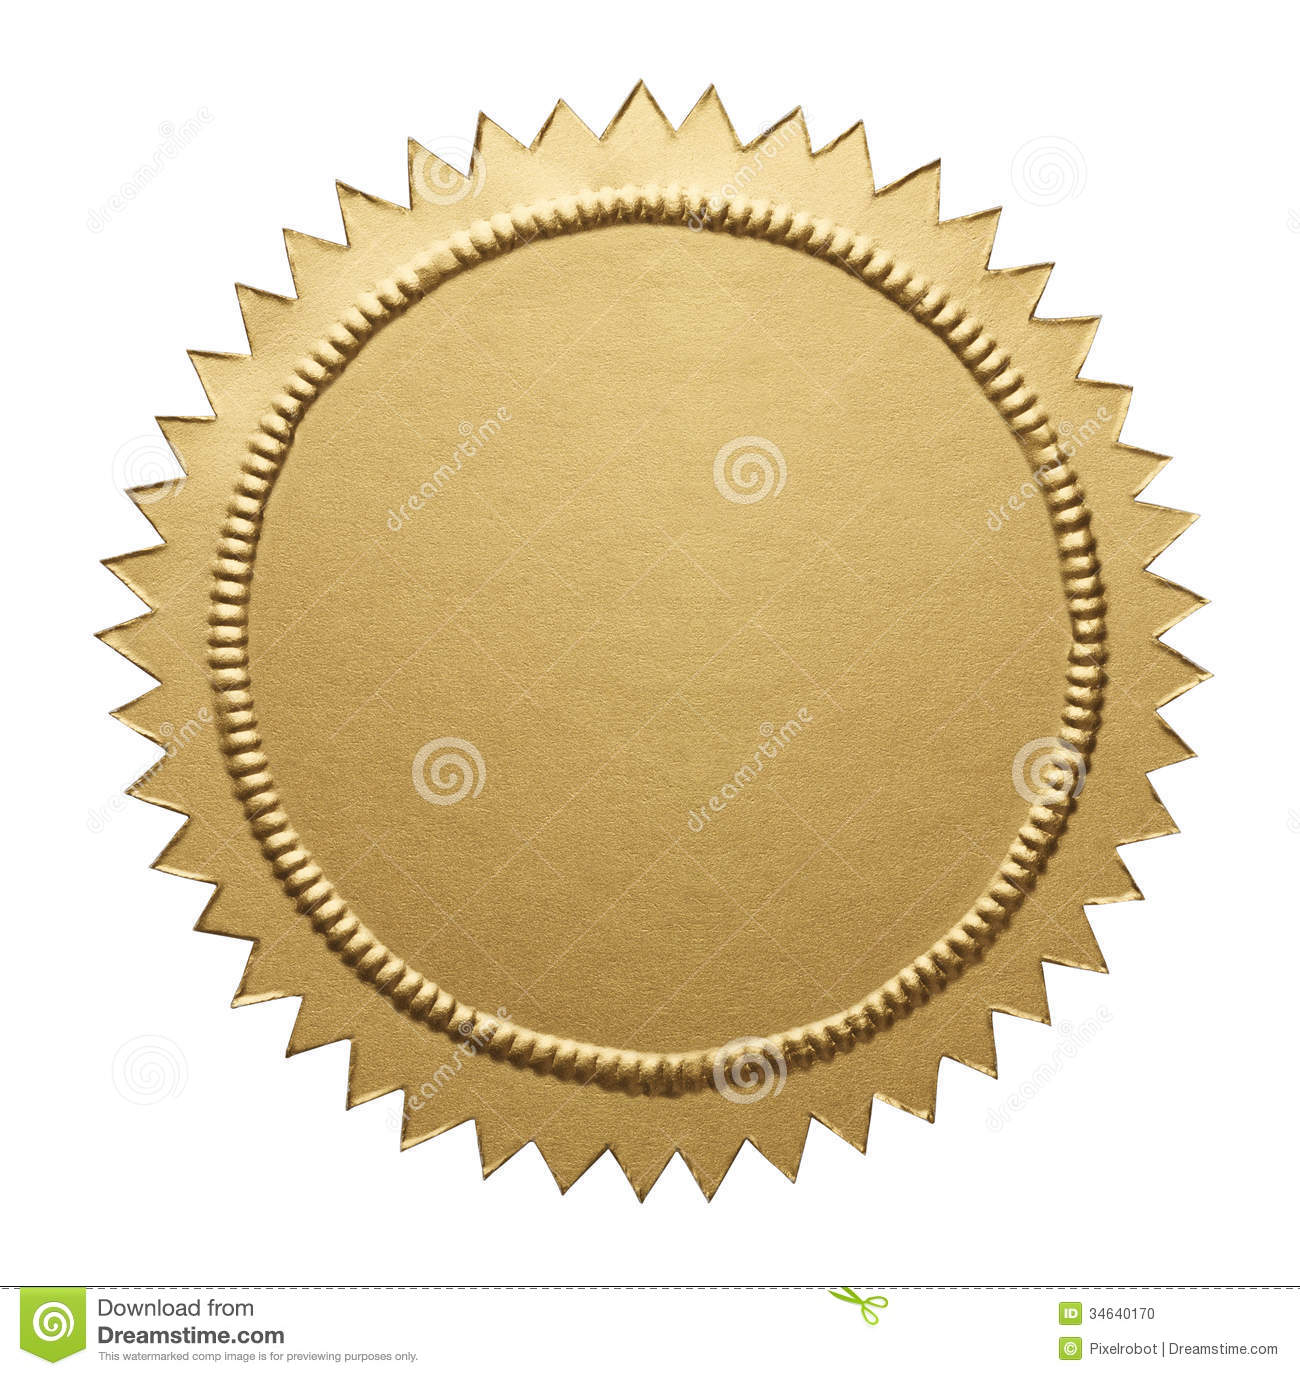 Gold Metallic Seal Stock Photo - Image: 34640170